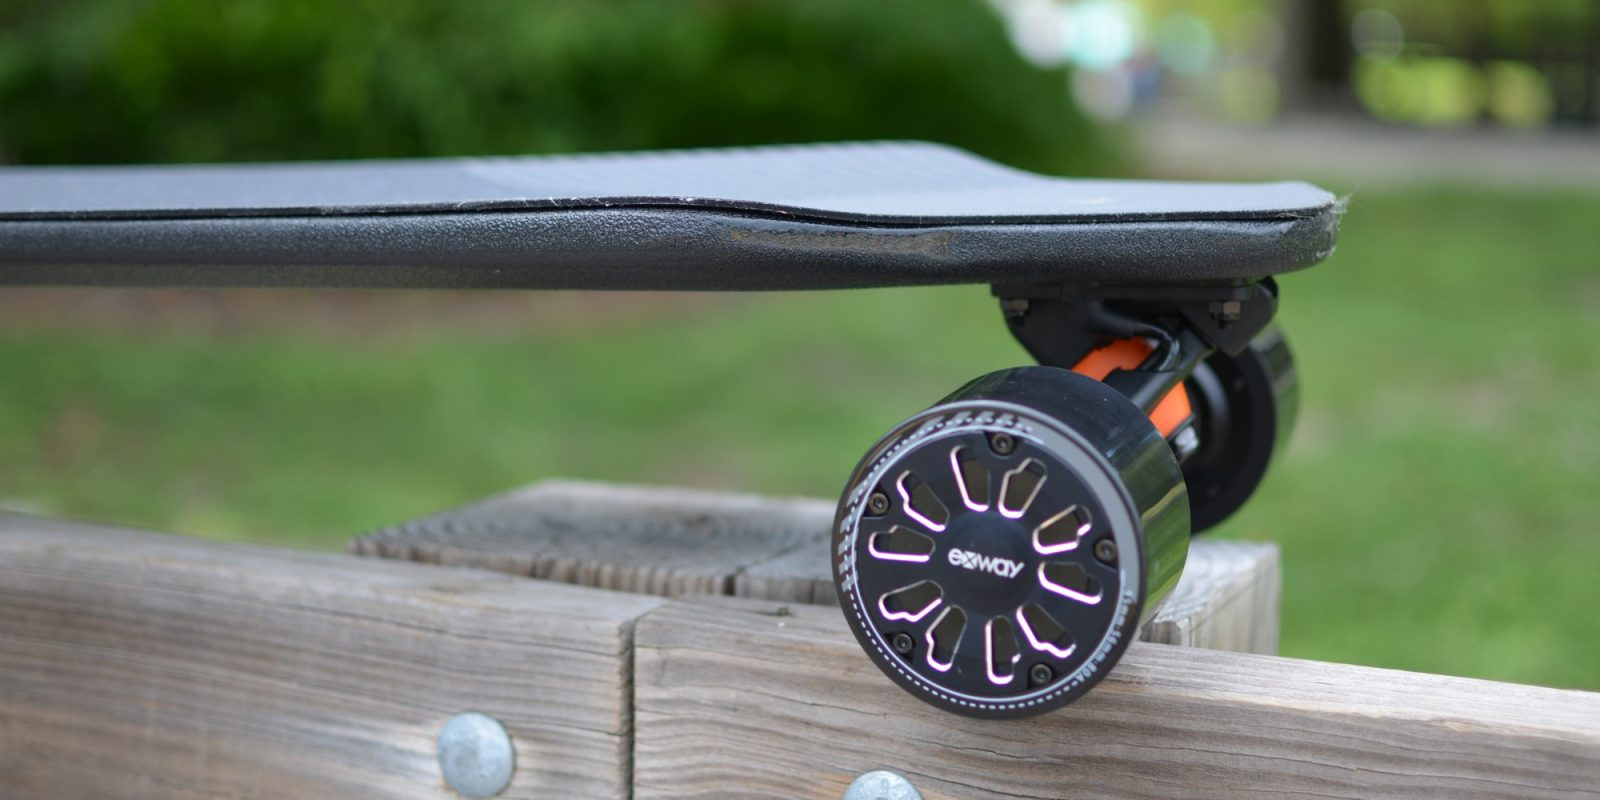 Exway X1 Pro electric skateboard review: A fast, fun and powerful esk8!